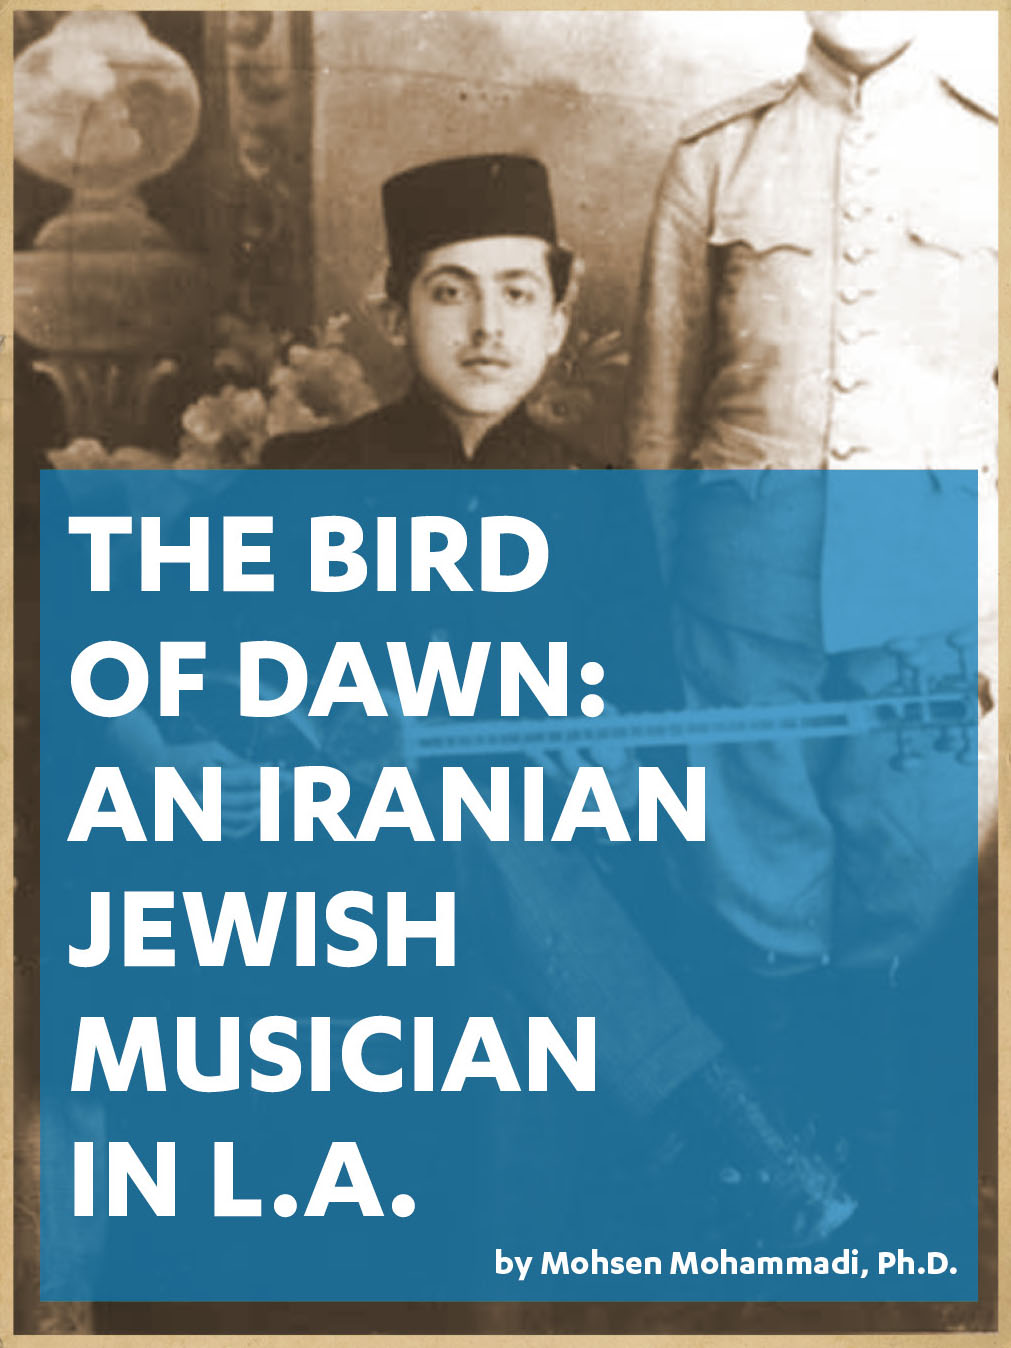 The Bird of Dawn: An Iranian Jewish Musician in L.A.